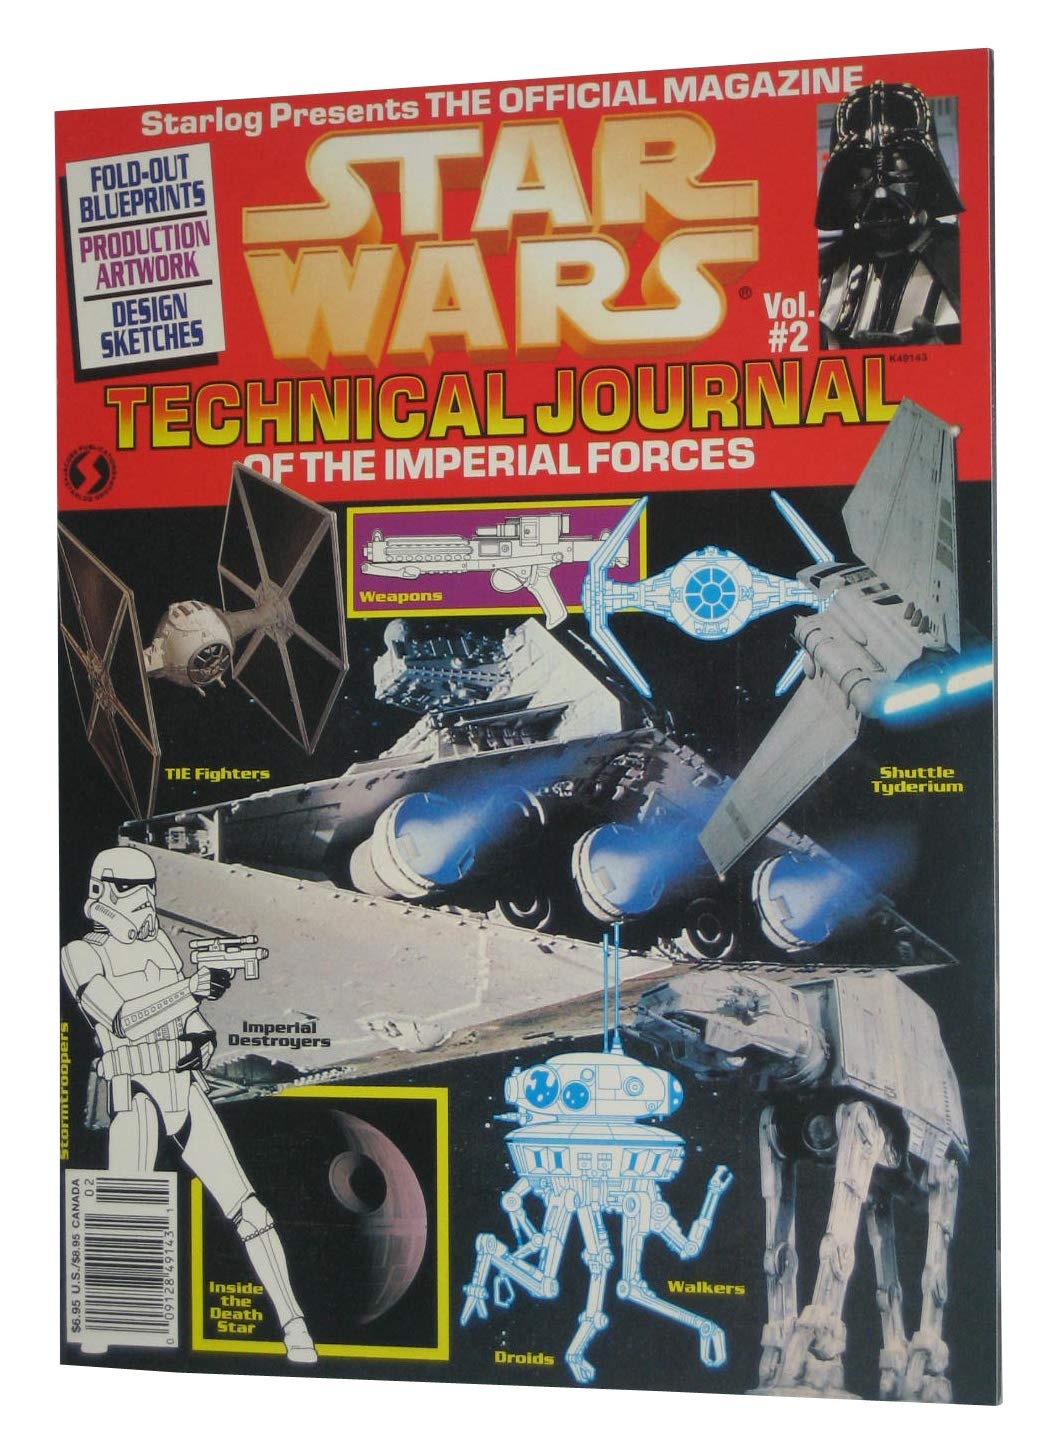 Star Wars Technical Journal of the Imperial Forces